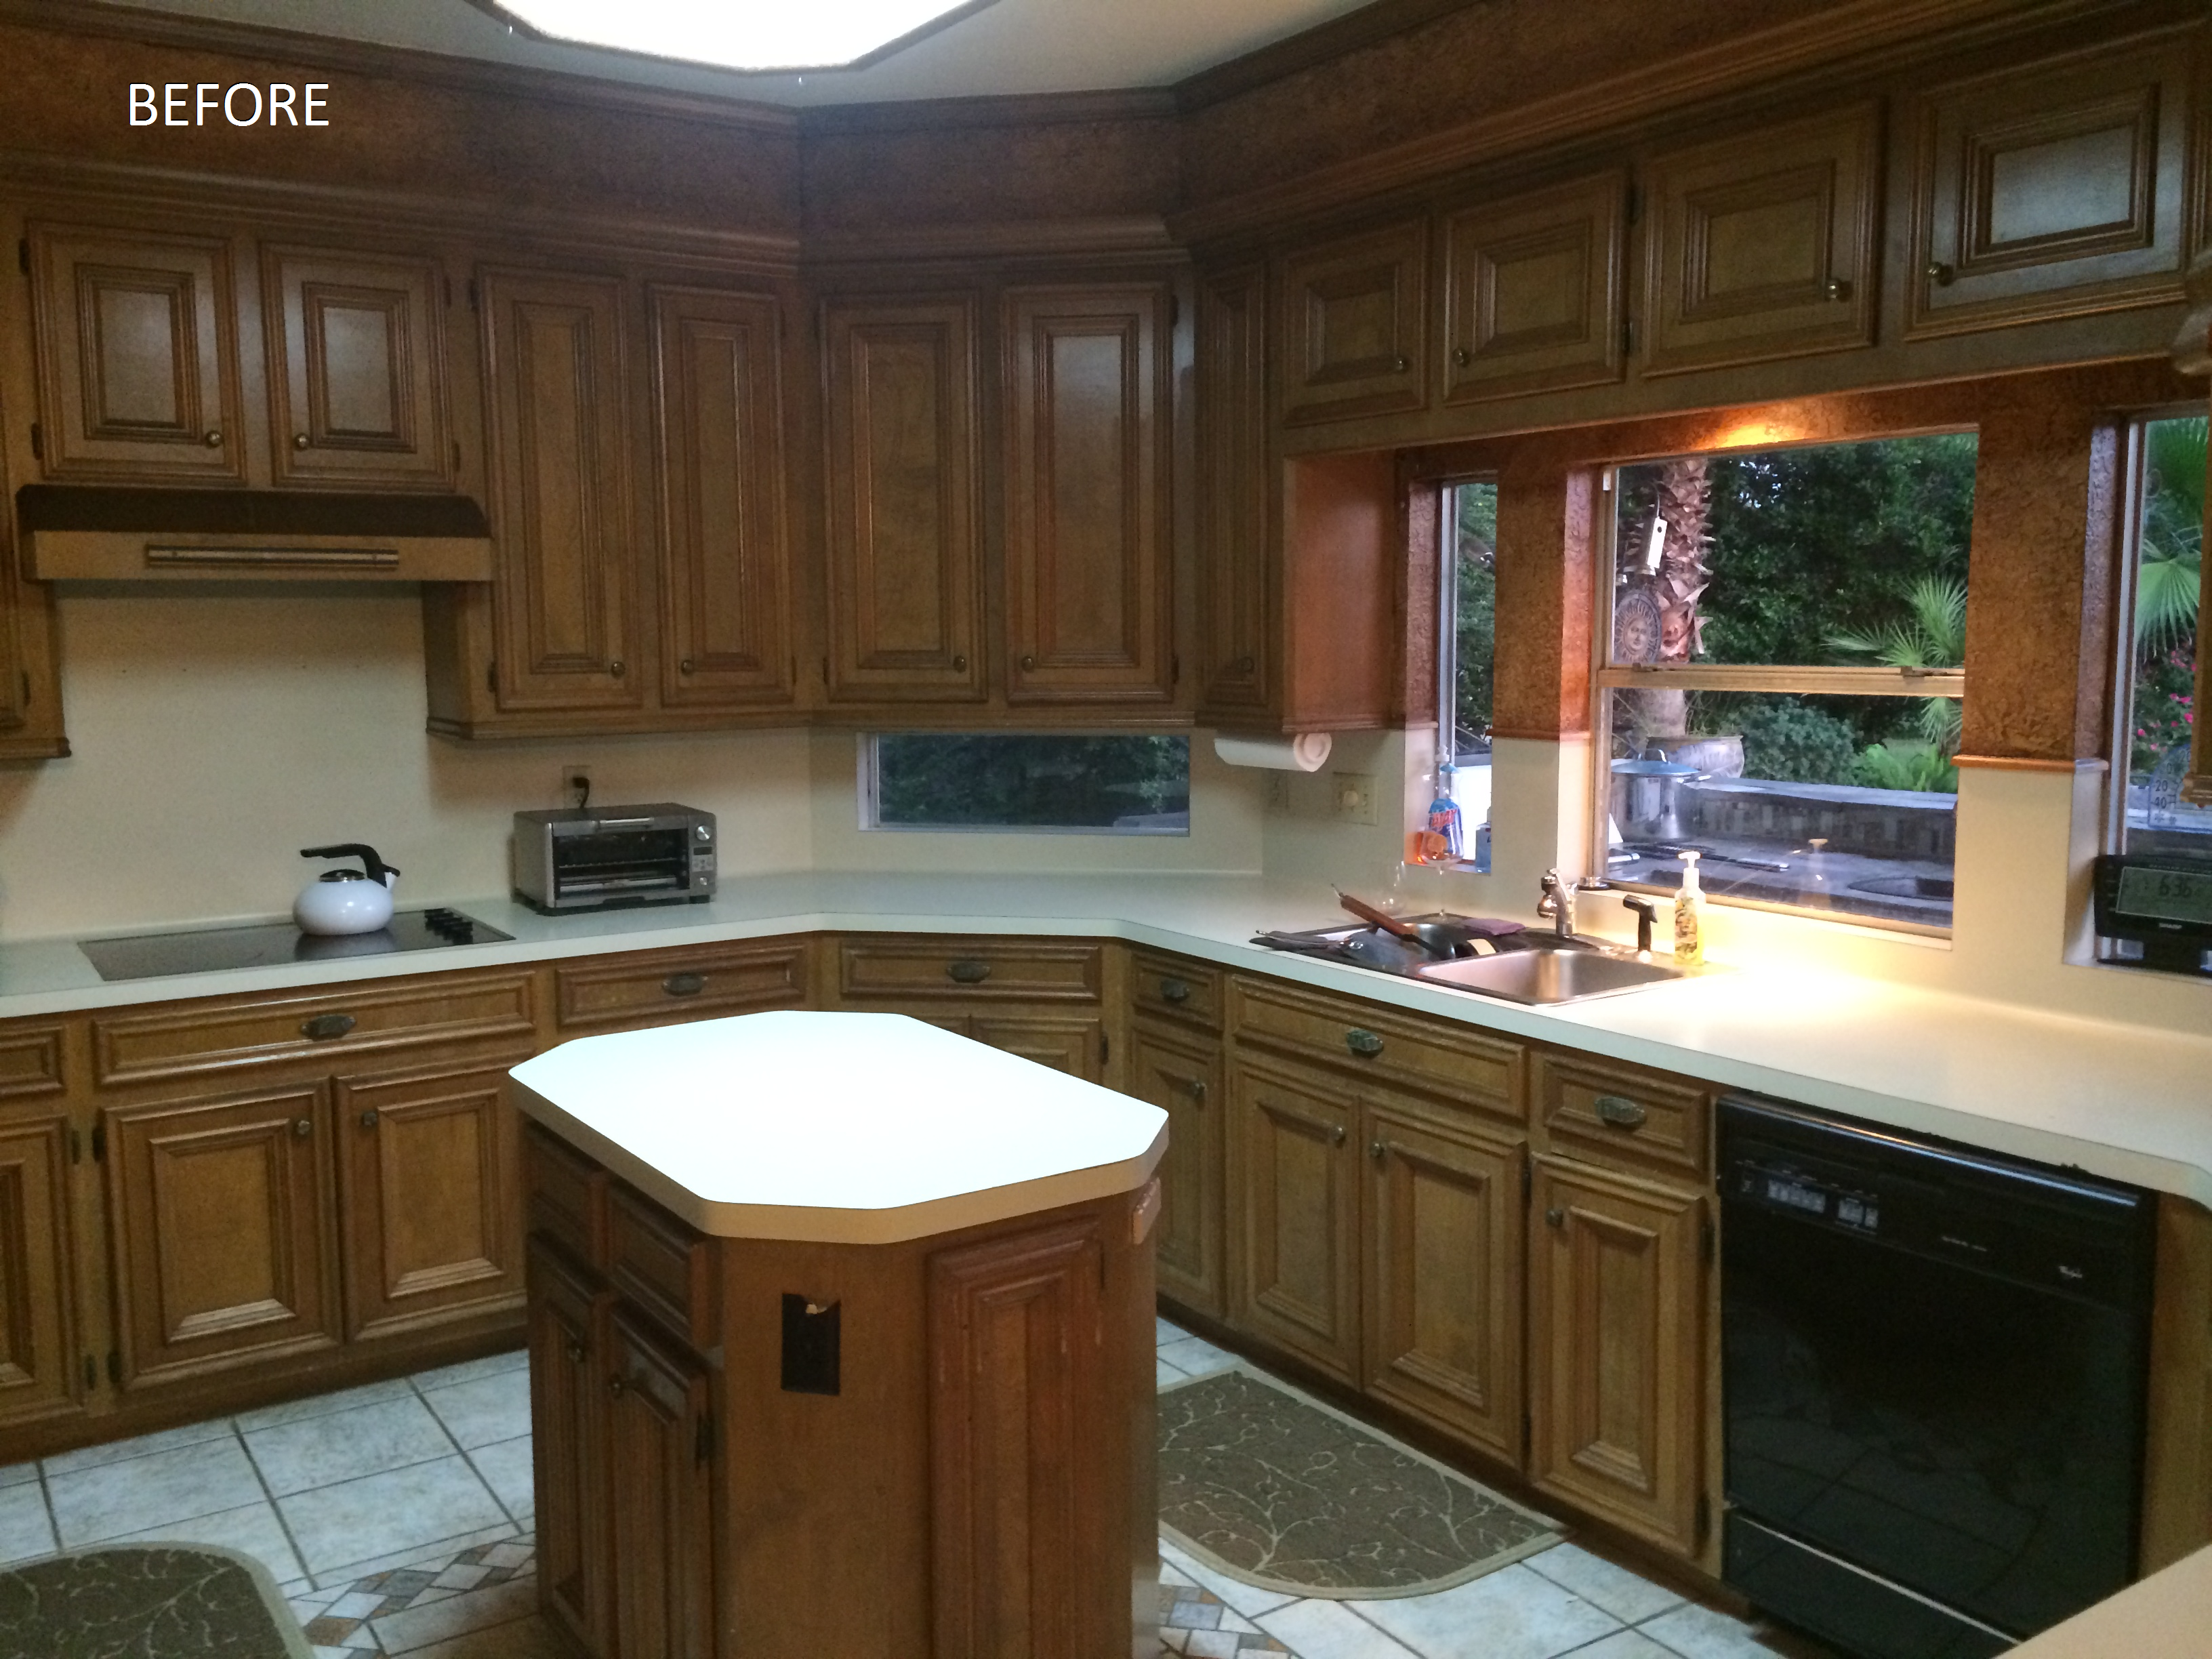 Need kitchen remodeling in Houston, TX? Look no further than Outdoor Homescapes of Houston, which - despite its name - also does interiors! Here's a before shot of a kitchen turned into a contemporary gem by Outdoor Homescapes' head designer, Lisha Maxey (also owner of LGH Interiors in Houston).